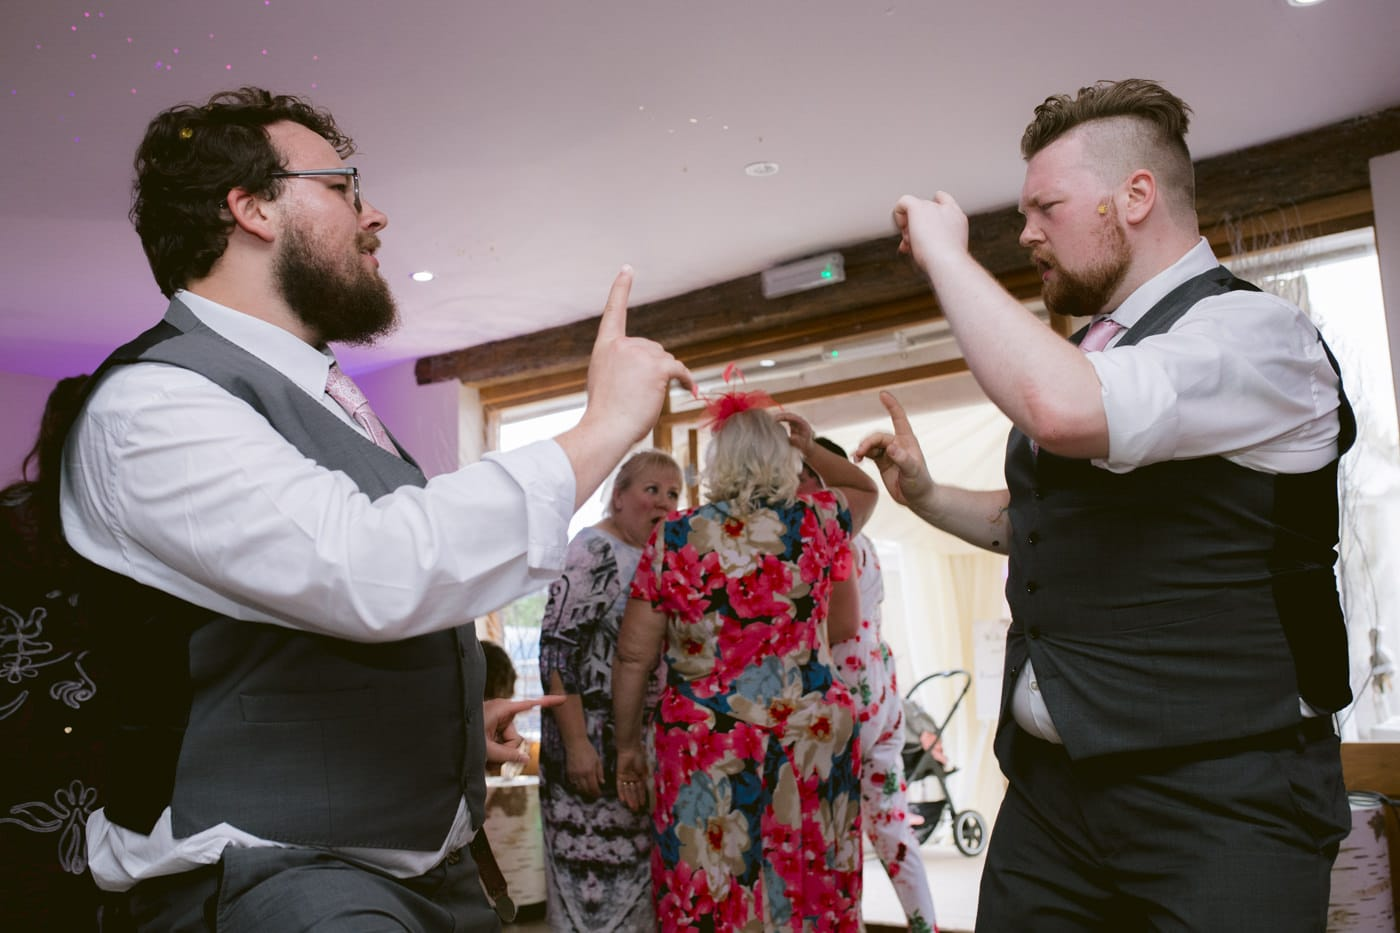 Groom and Guest Dancing Together Portrait